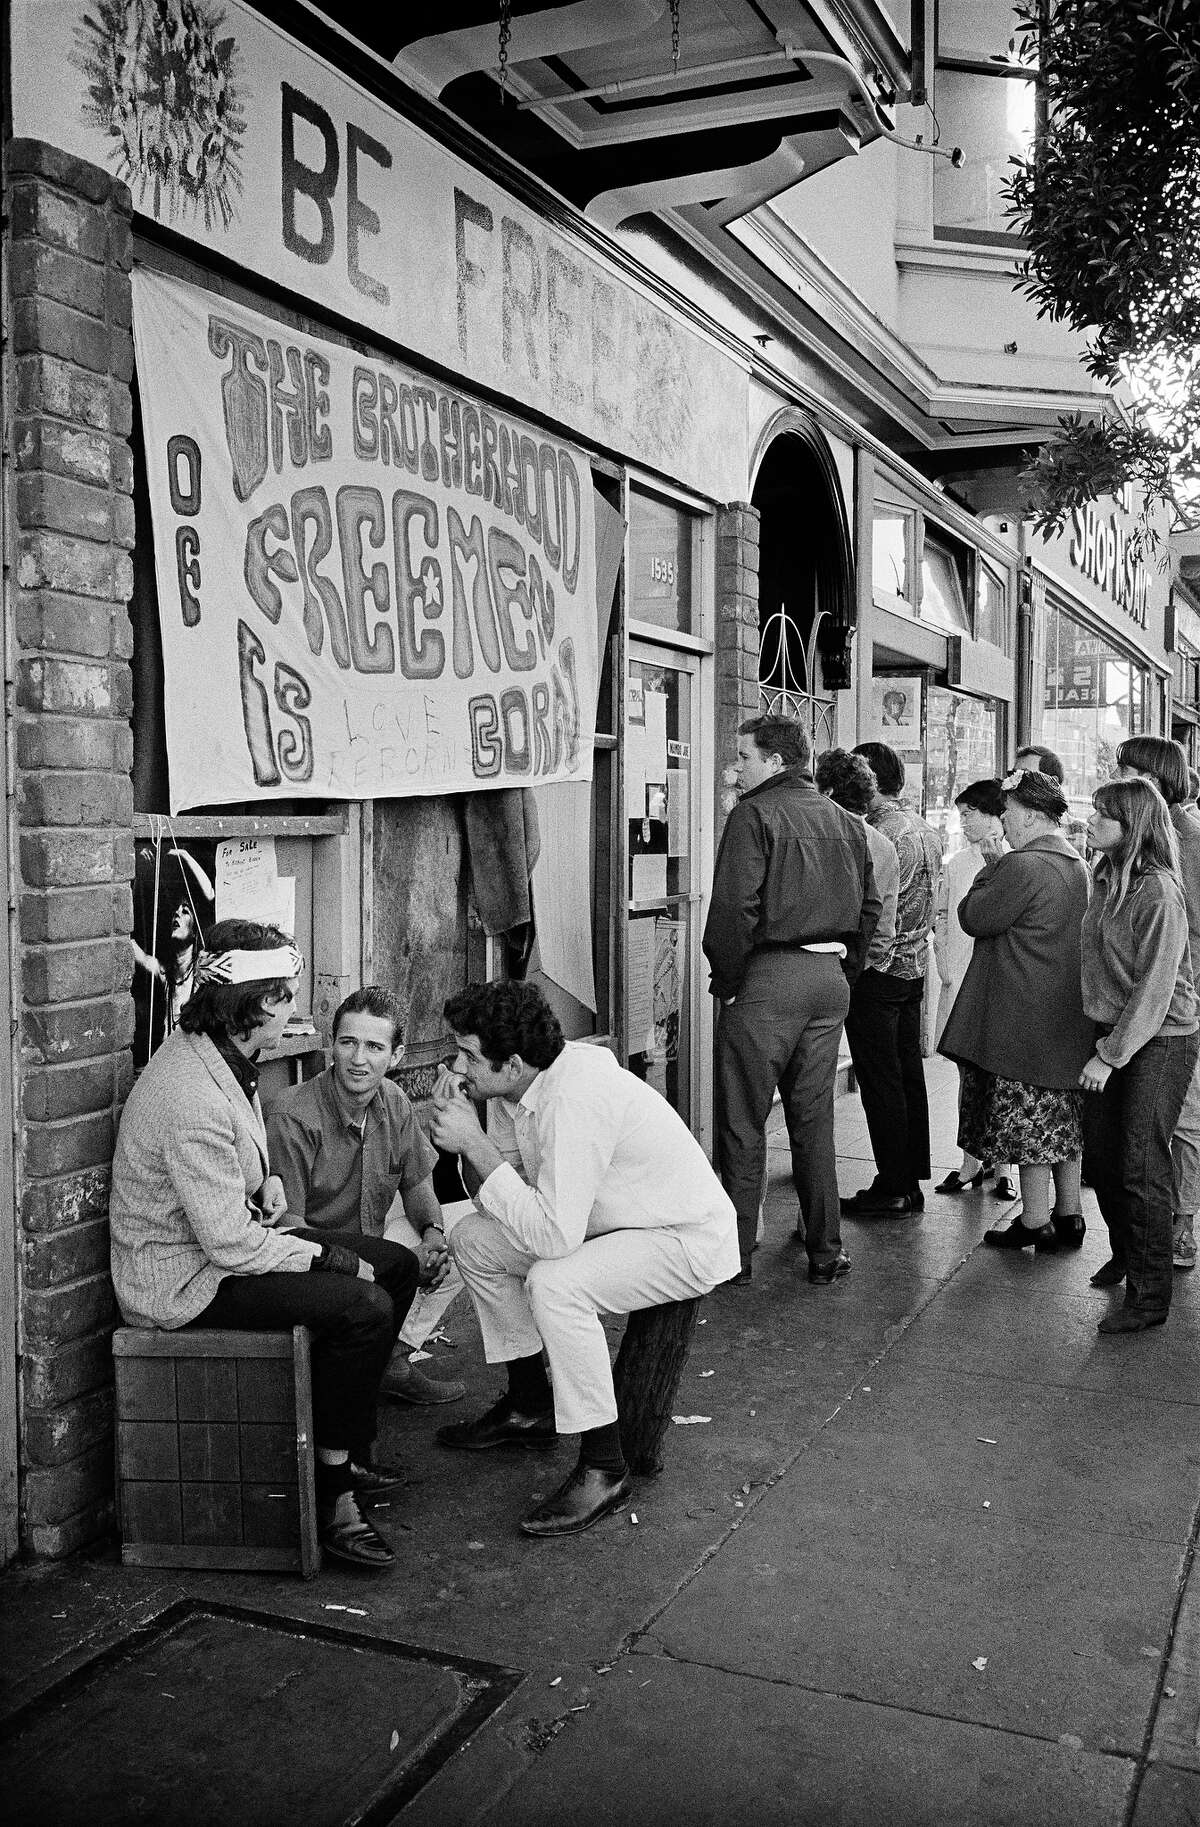 A storefront for The Brotherhood of Freemen, a group opposed to the use of hard drugs, on Haight Street.